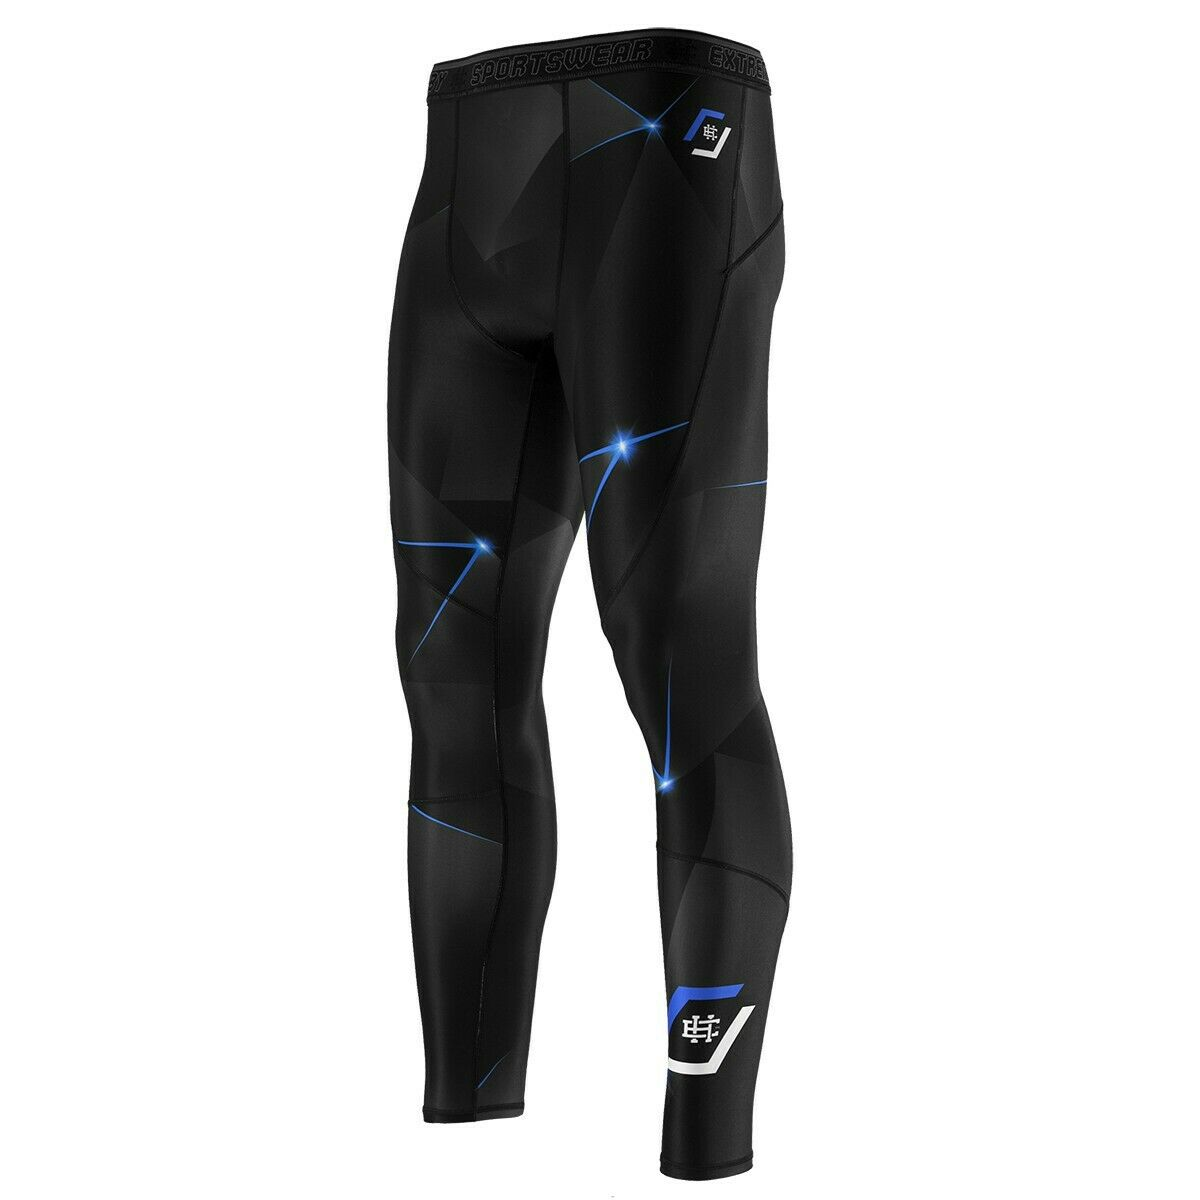 Leggings für Männer MT SPORT Extreme Hobby Training GYM MMA BBJ